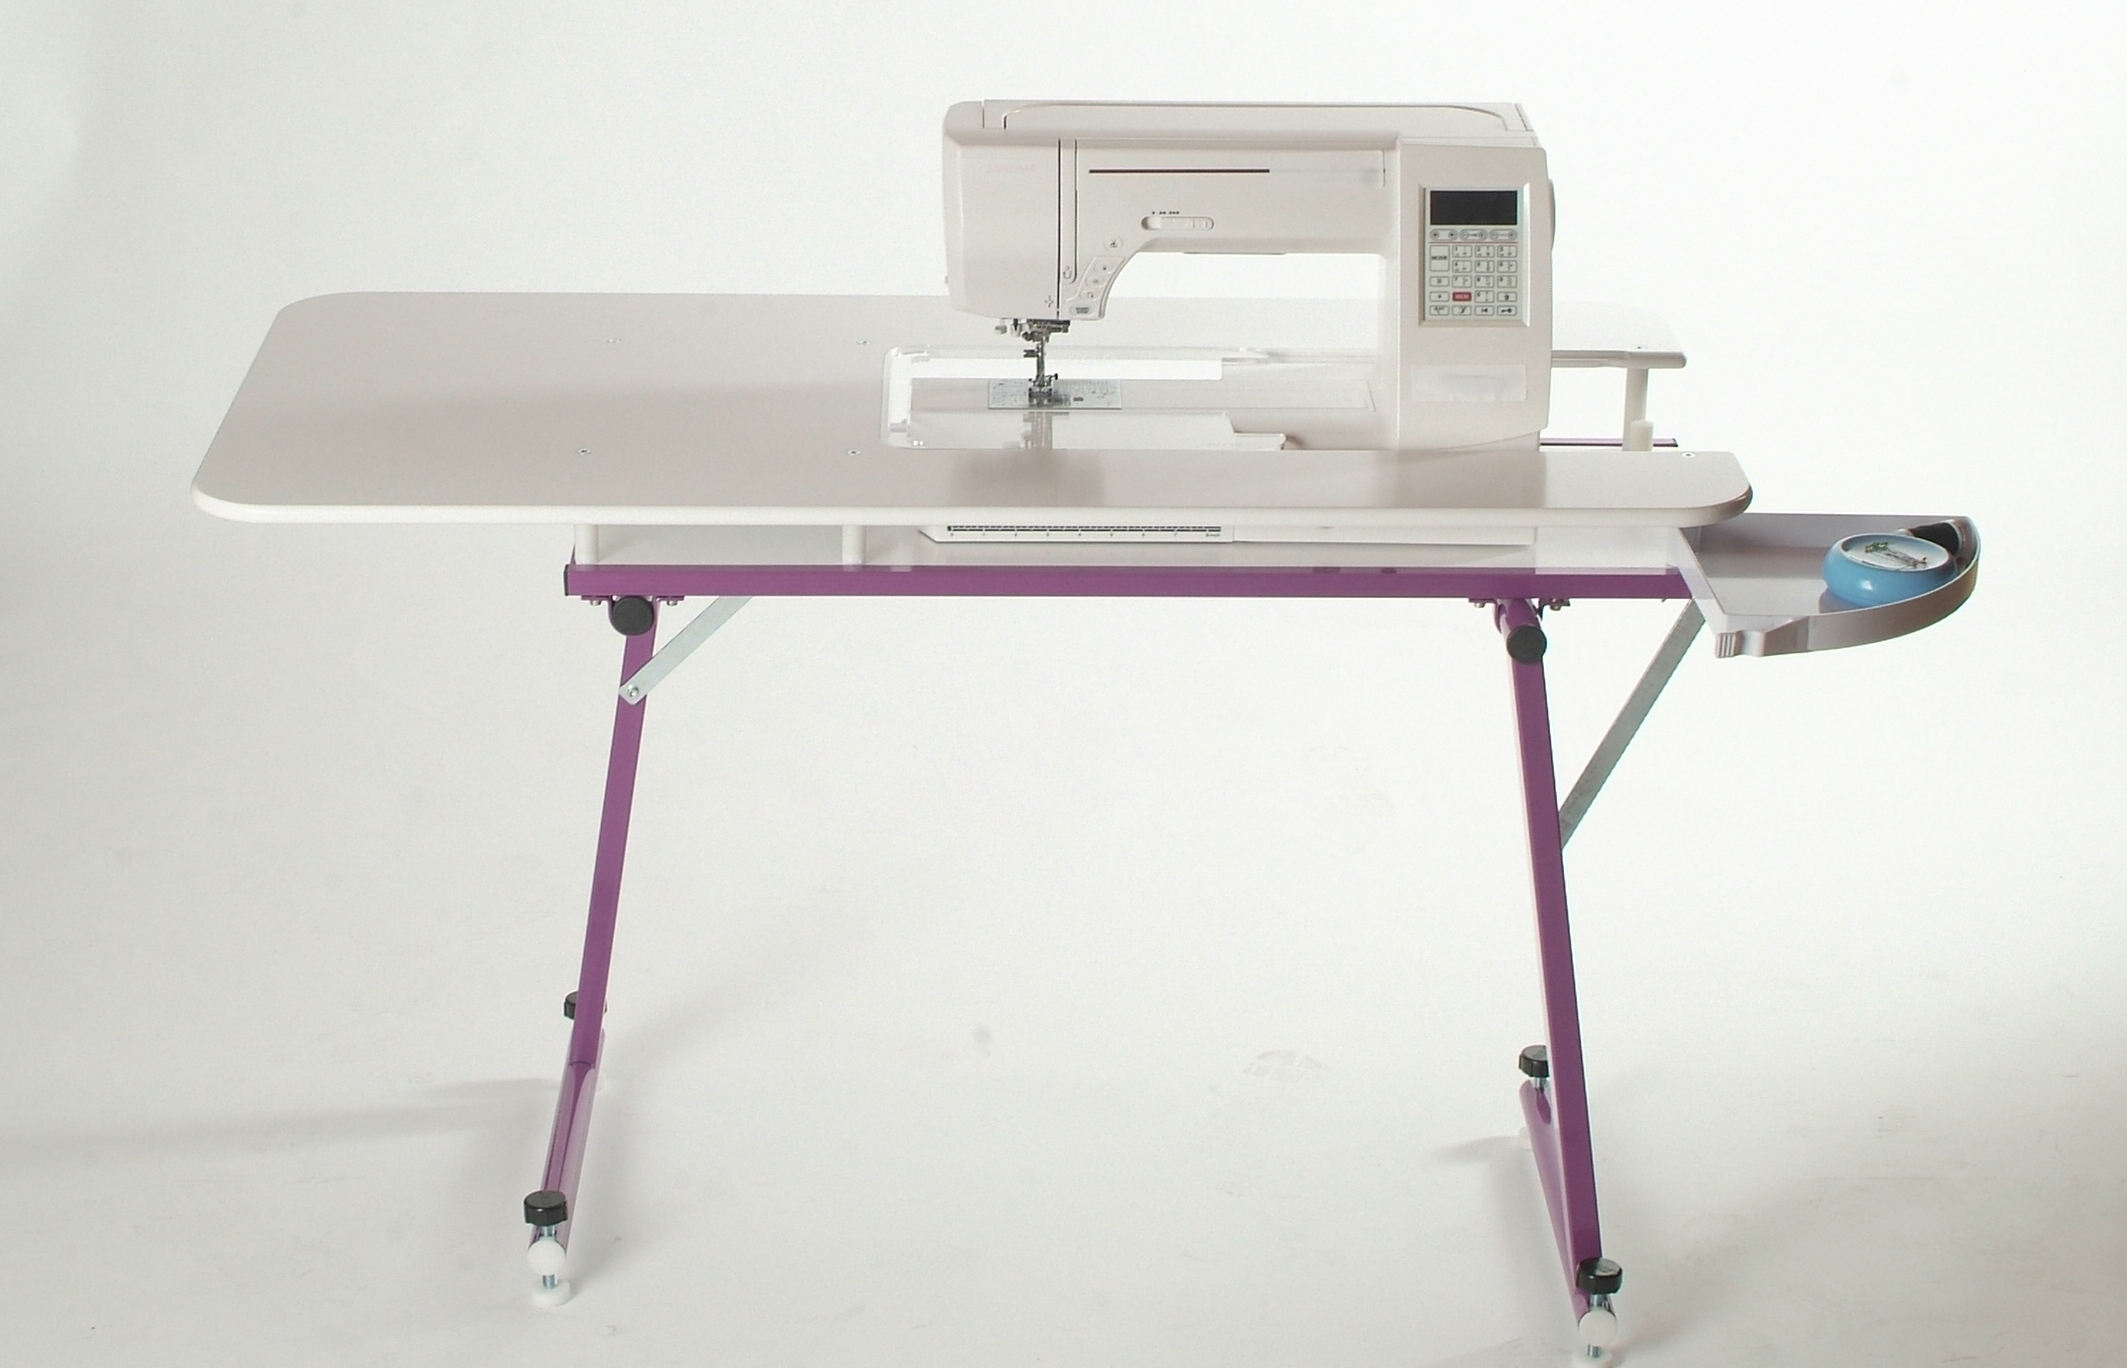 Sewezi grande sewing table quiltastix for Grande table